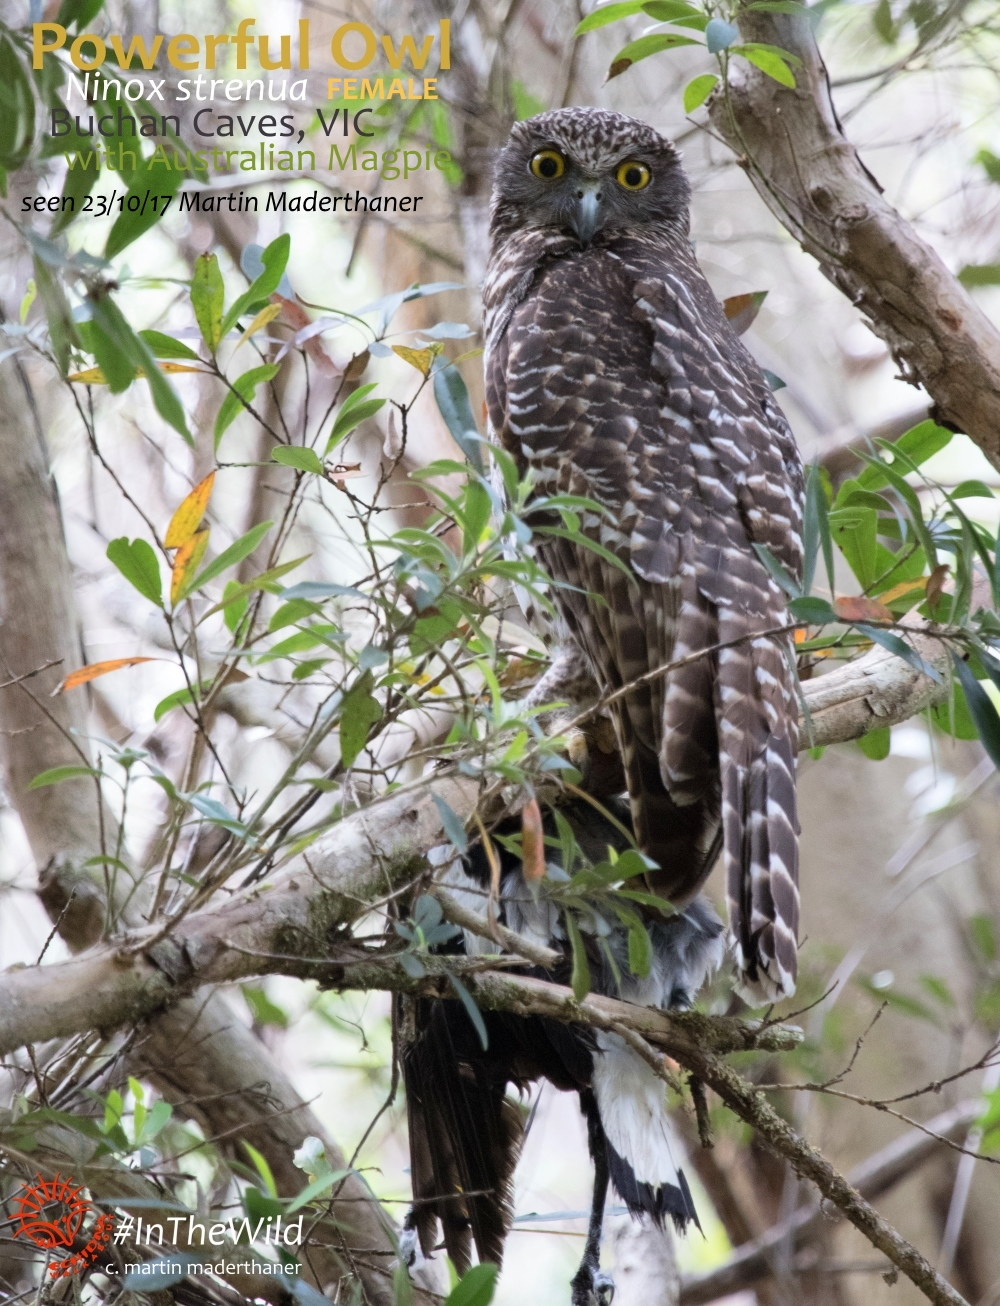 Powerful Owl holding dead Magpie